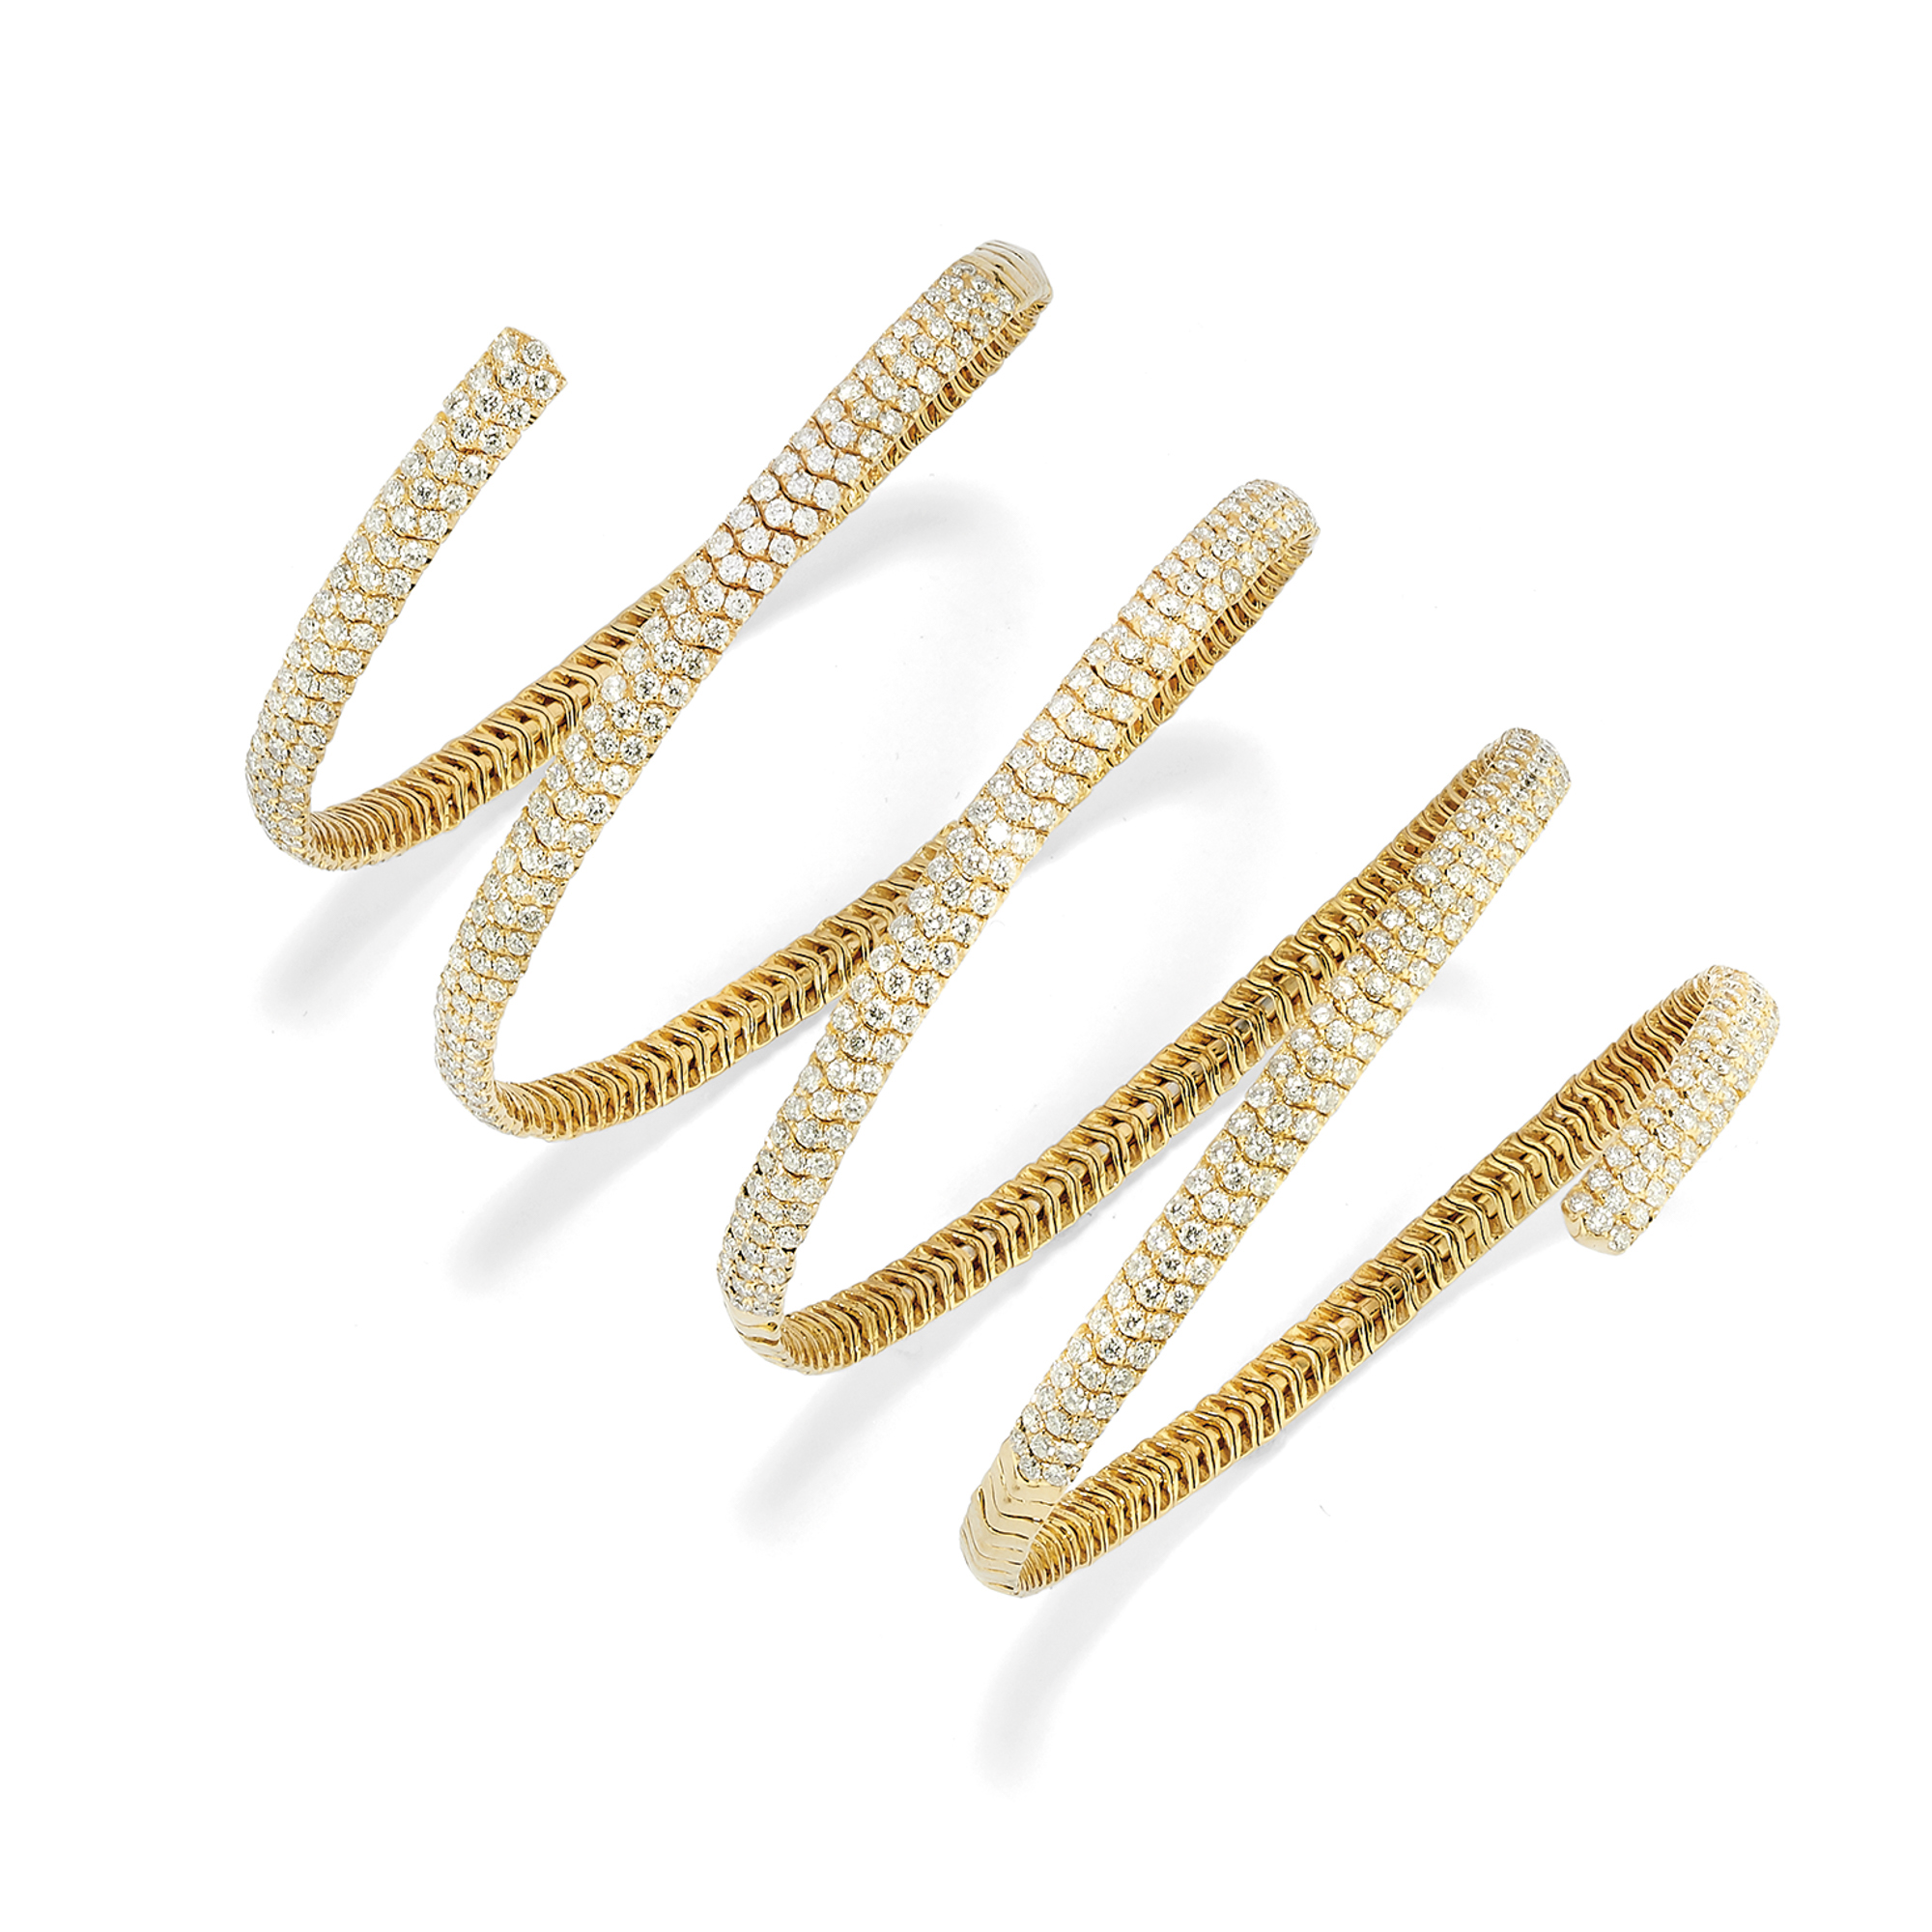 Lotto 68: Bracciale In Oro 18k E Diamanti